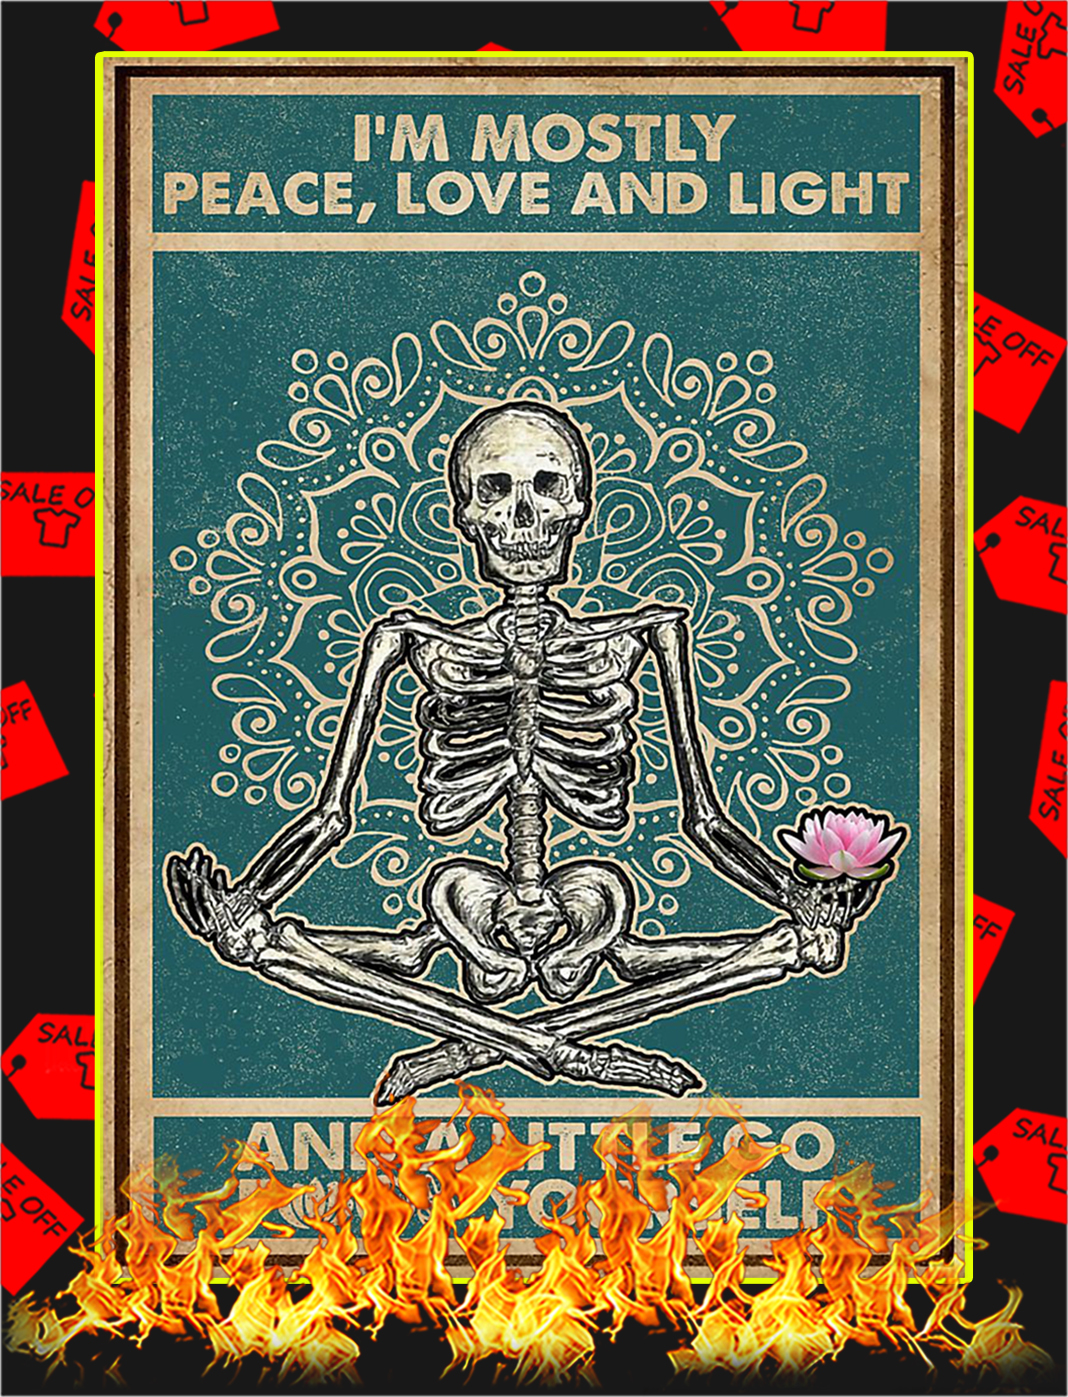 Skeleton I'm mostly peace love and light and a little go fuck yourself poster - A2